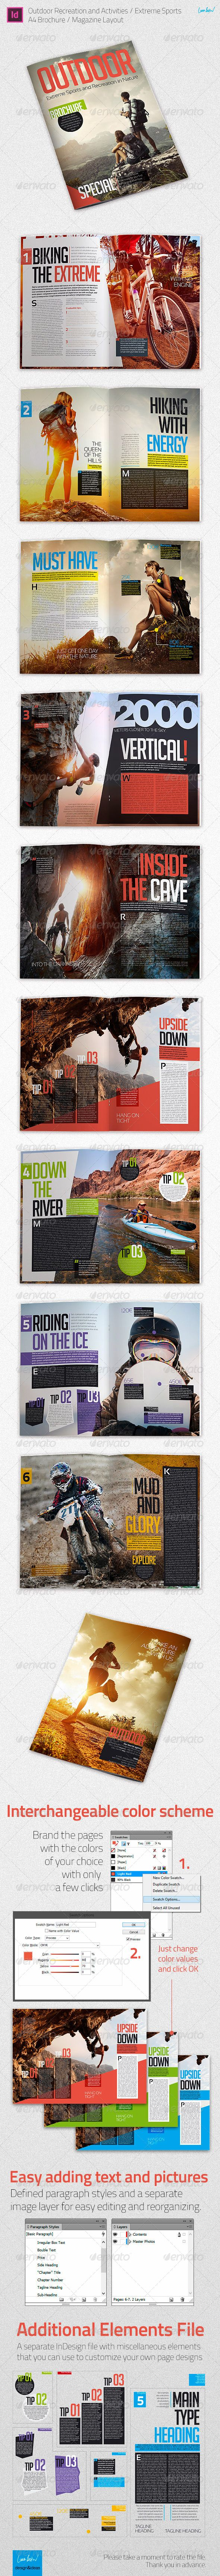 Outdoor Recreation / Extreme Sports - A4 Brochure - Brochures Print Templates